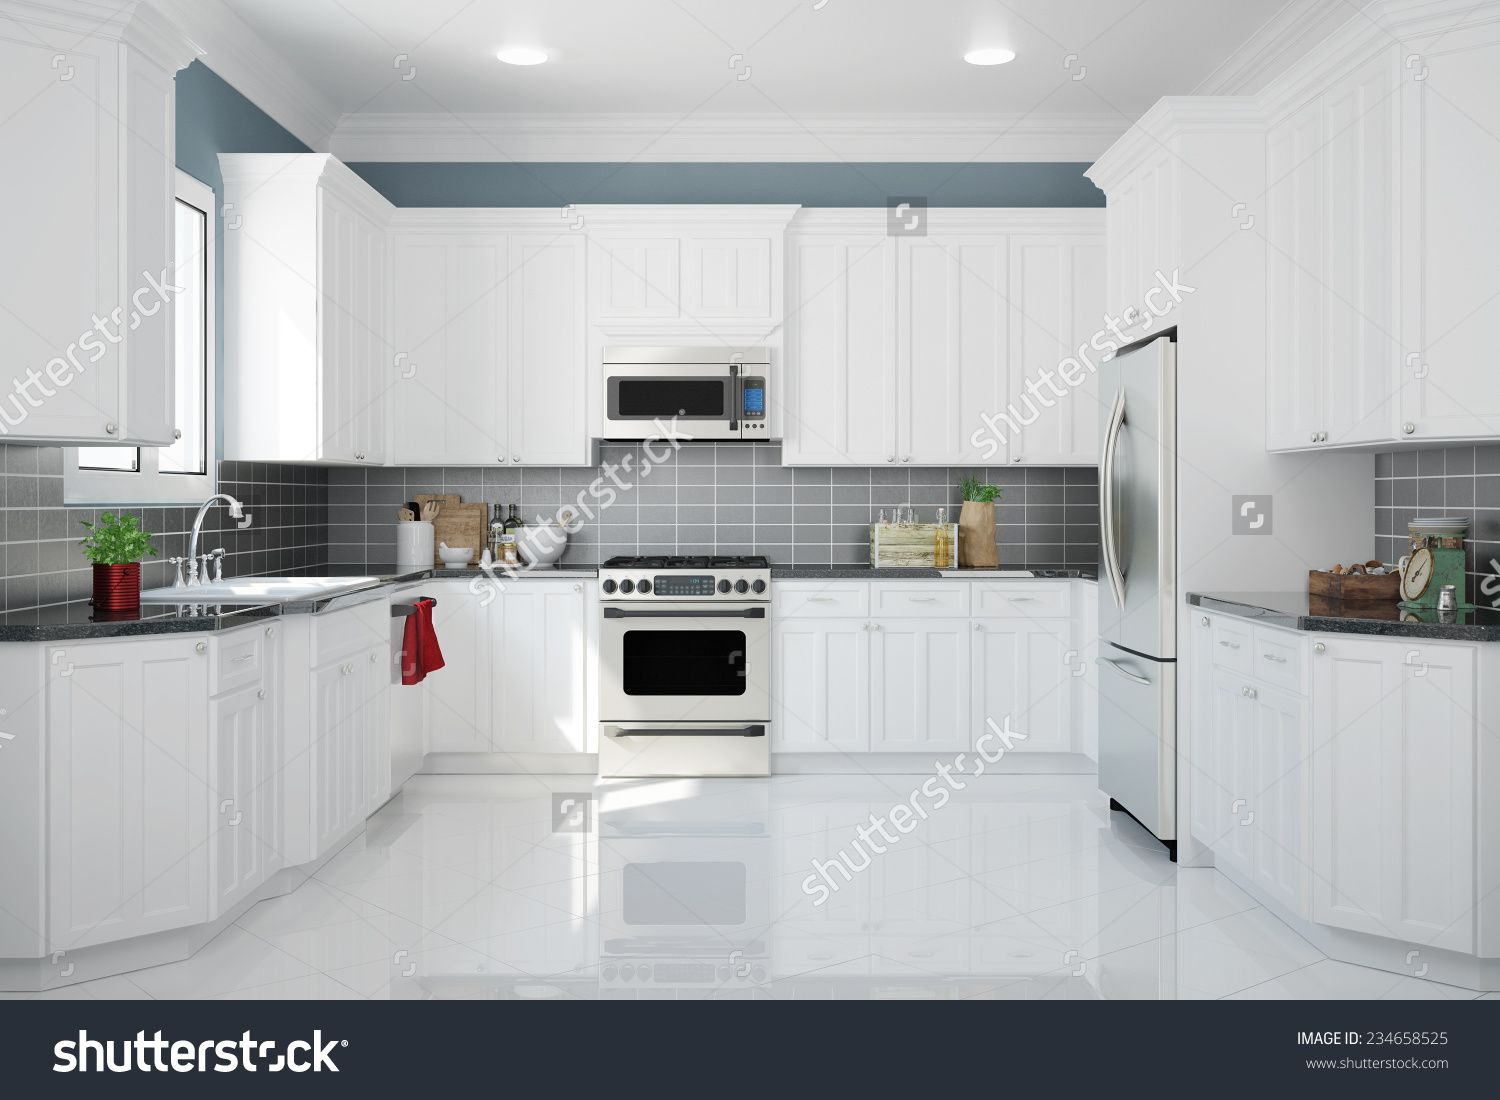 stock-photo-interior-of-new-white-kitchen-with-kitchenware-and ...